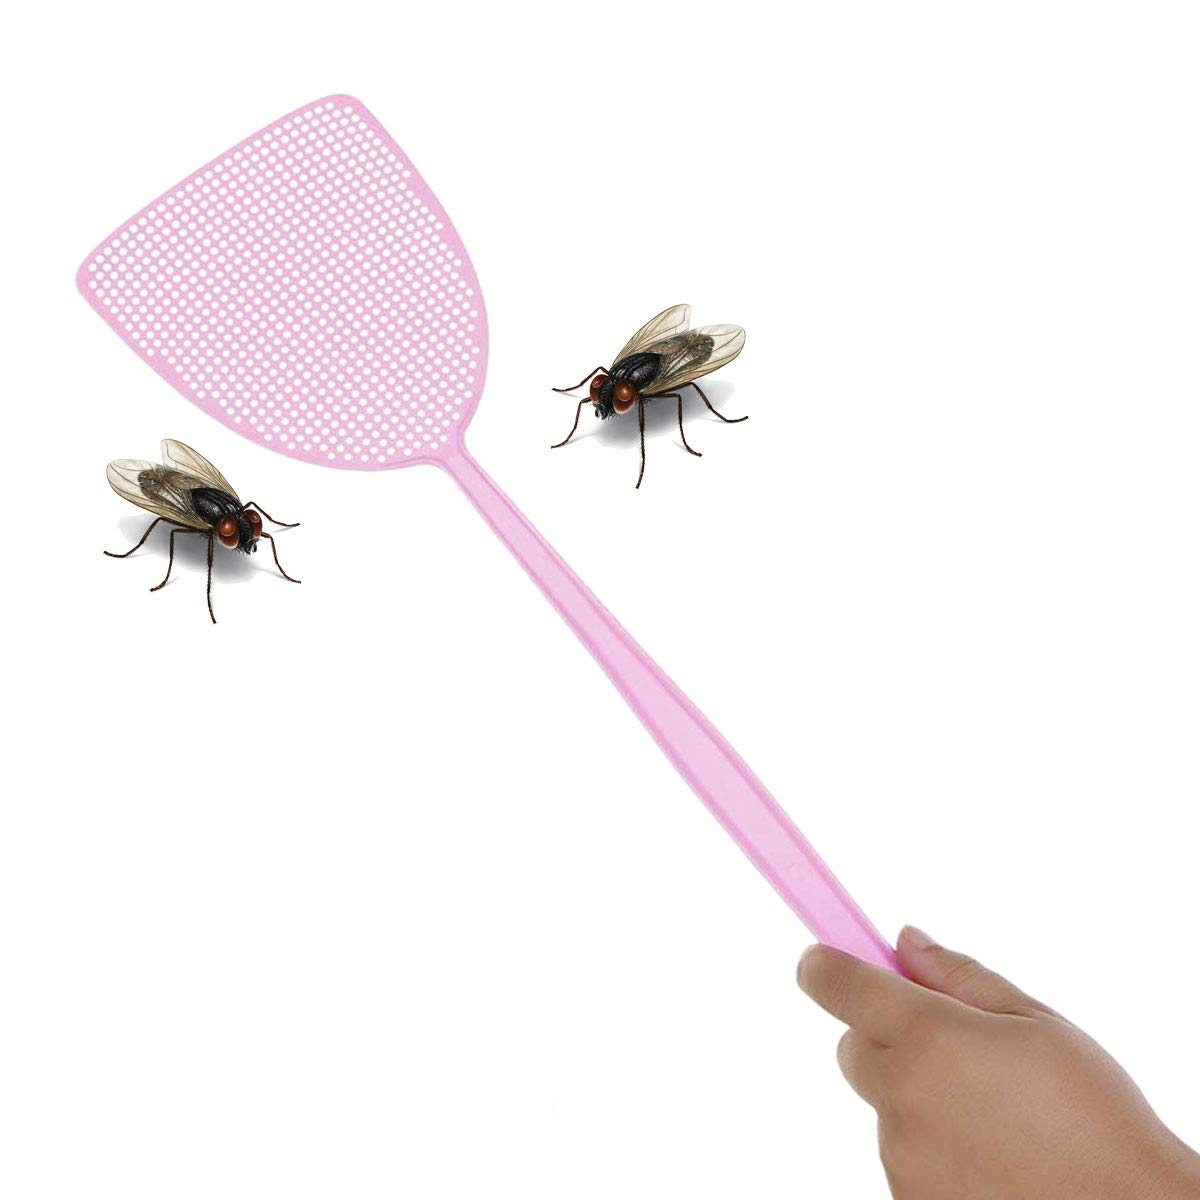 ExeQianming Fly Swatter Blue Green and Purple 3 Pack Plastic Fly Swat Insect Mosquito Wasp